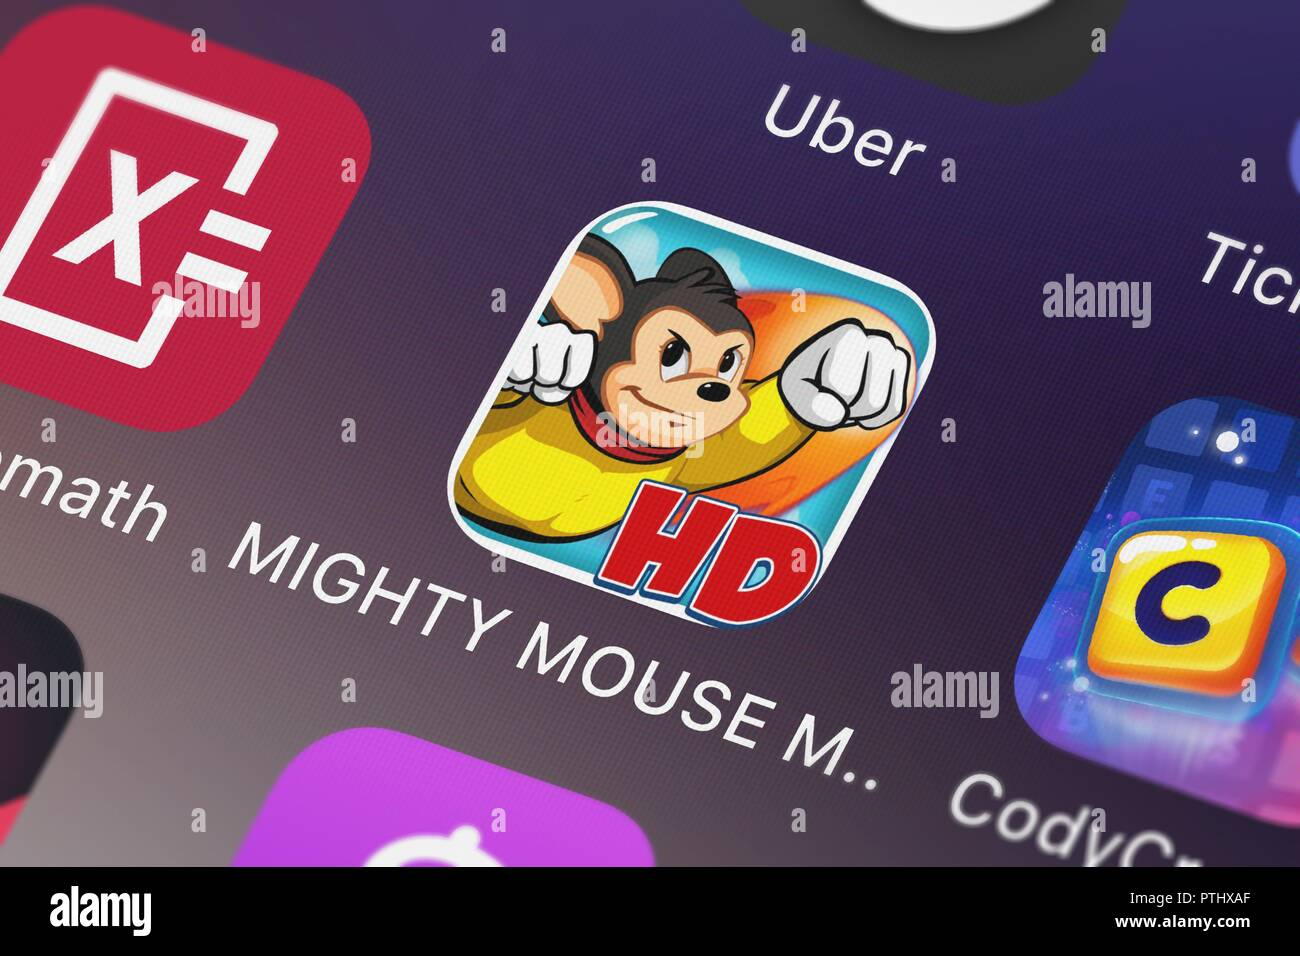 London, United Kingdom - October 09, 2018: Close-up shot of the MIGHTY MOUSE My Hero HD application icon from CBS Interactive on an iPhone. - Stock Image